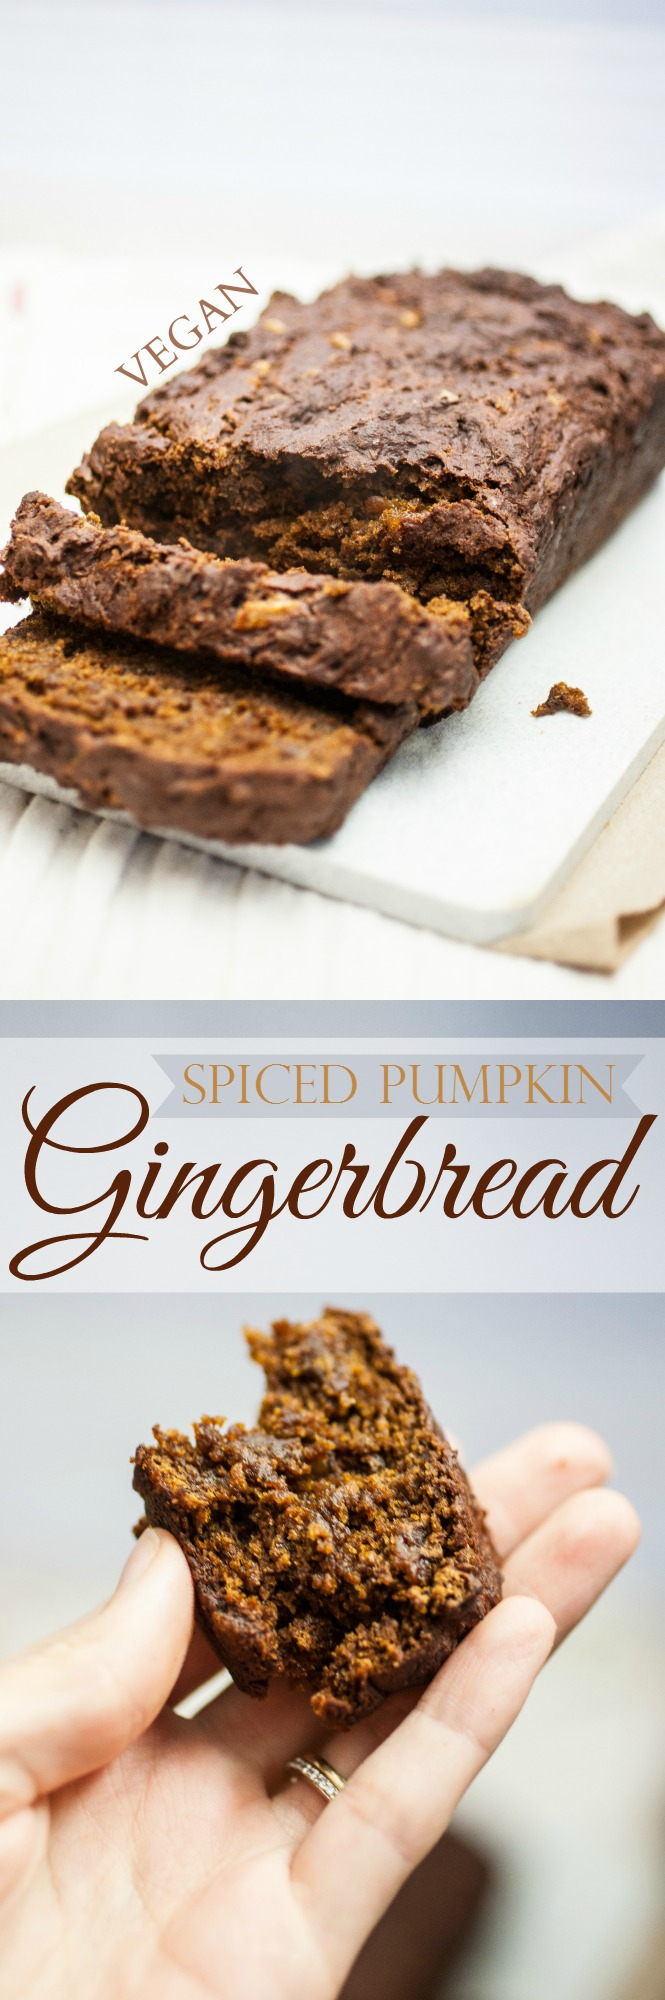 Spiced Pumpkin Gingerbread — Produce On Parade - This gooey dessert bread is the essence of #Thanksgiving and Christmas combined. Heavenly winter #gingerbread is scented with autumnal spices and moistened with #pumpkin. Bits of candied ginger throughout lend a spicy bite.